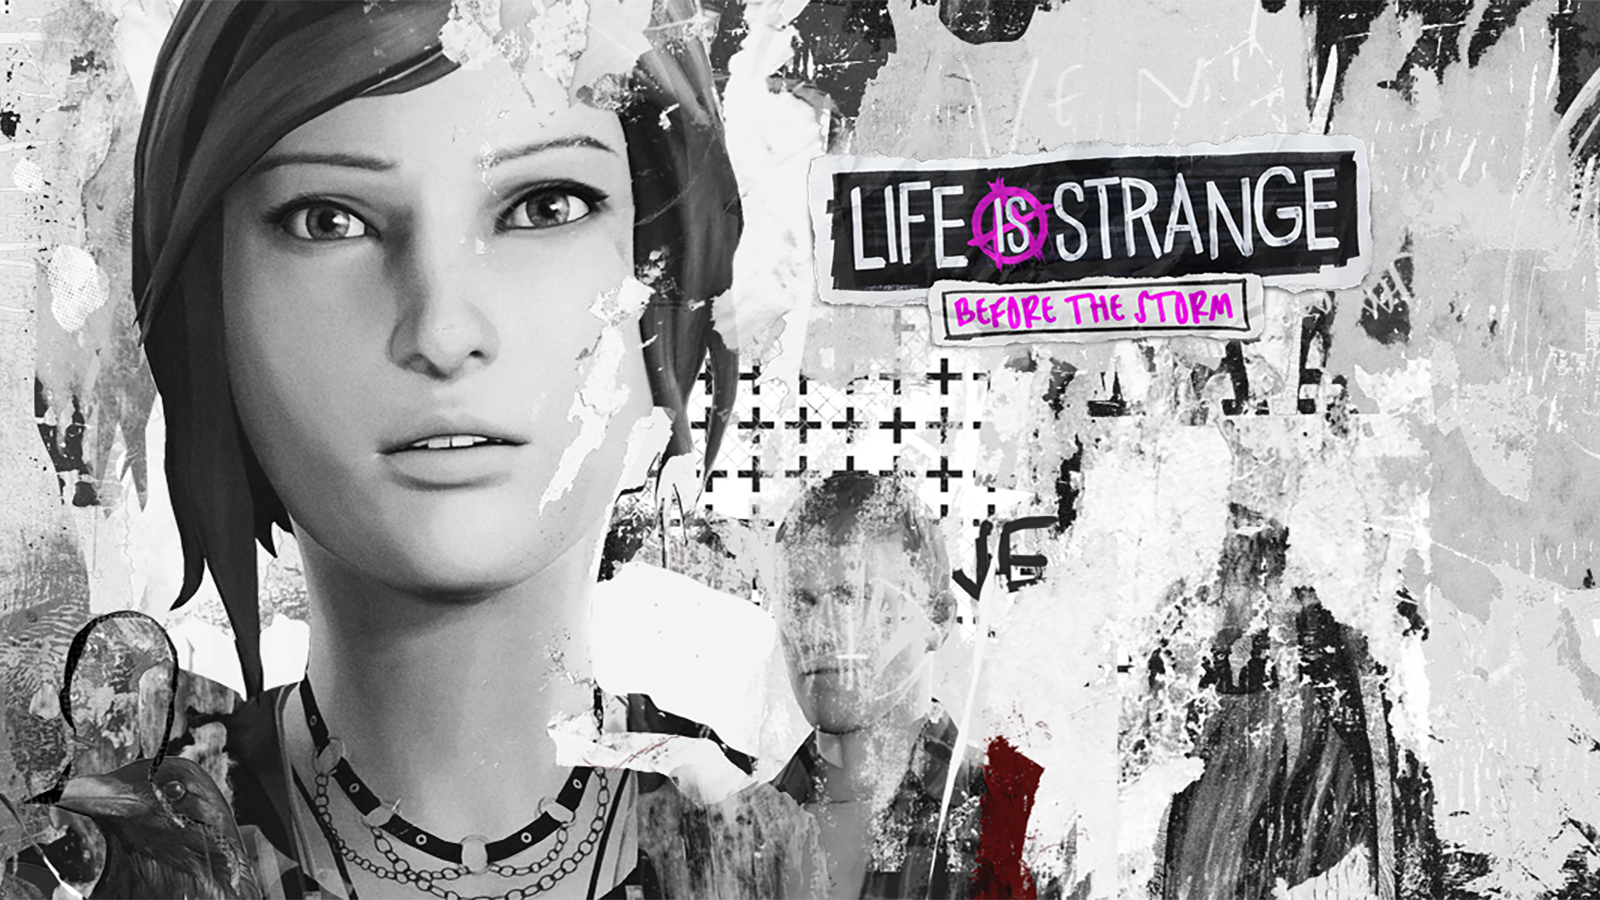 life-is-strange-before-the-storm-listing-thumb-01-ps4-us-19may17.png